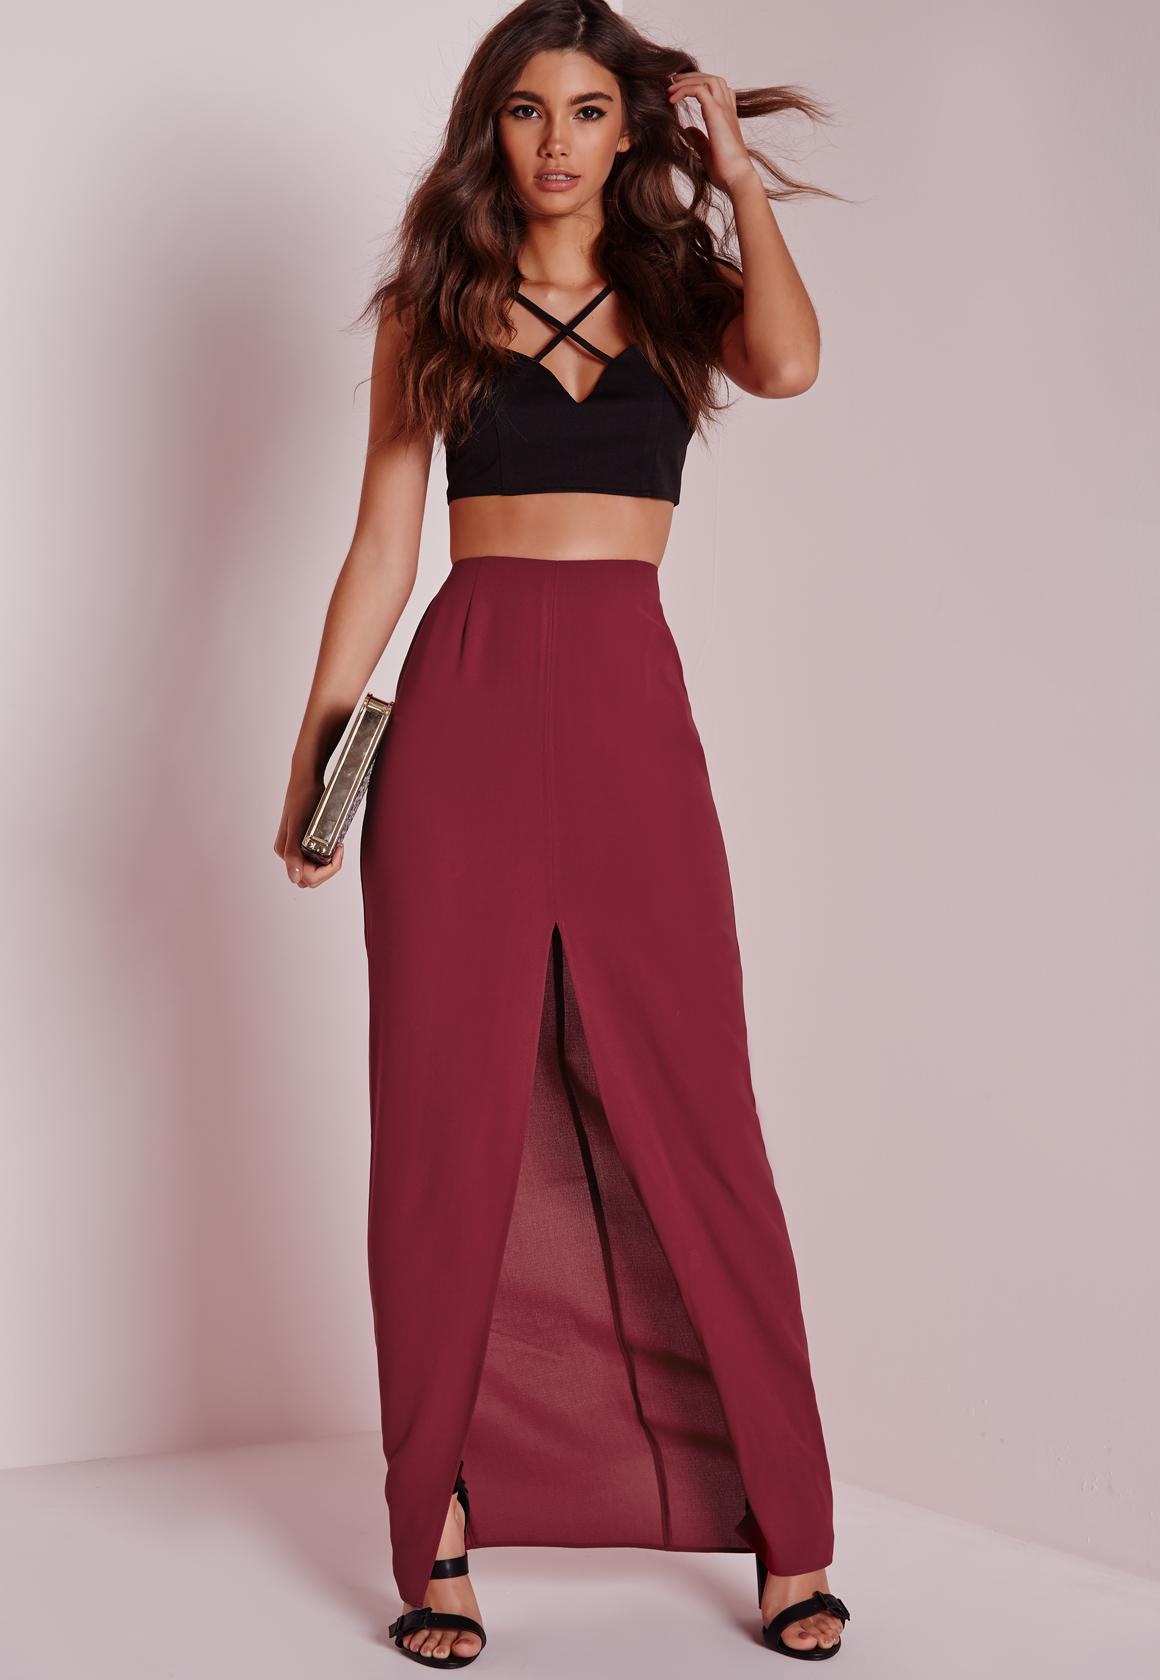 Split Front Maxi Skirt Burgundy - Maxi - Skirts - Missguided